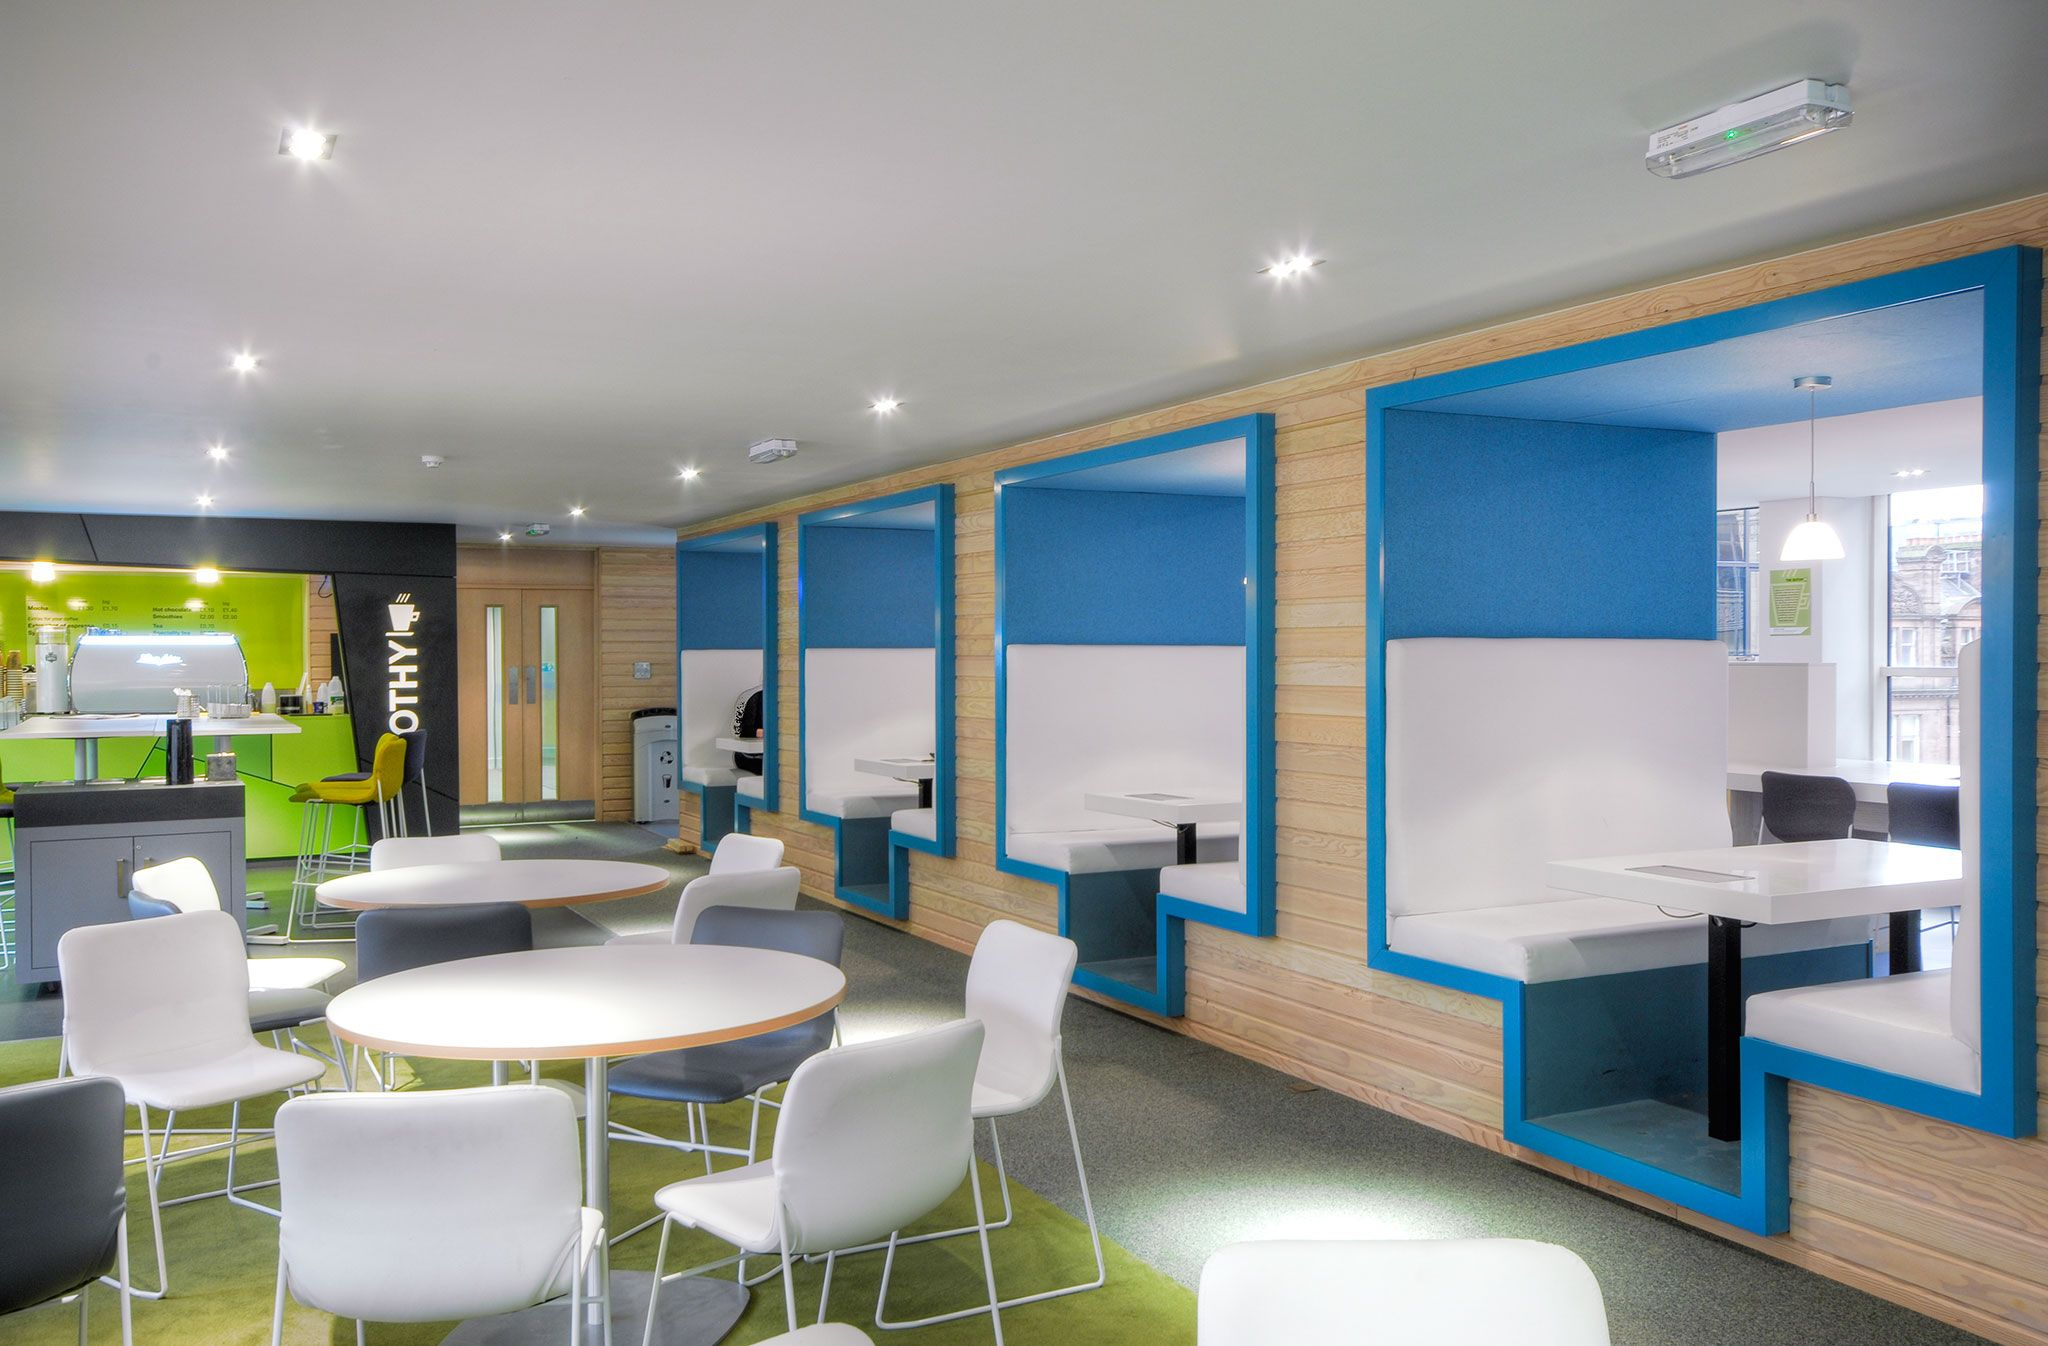 Graven Designed The Head Offices Of Student Loans Company Glasgow Scope Included Communications